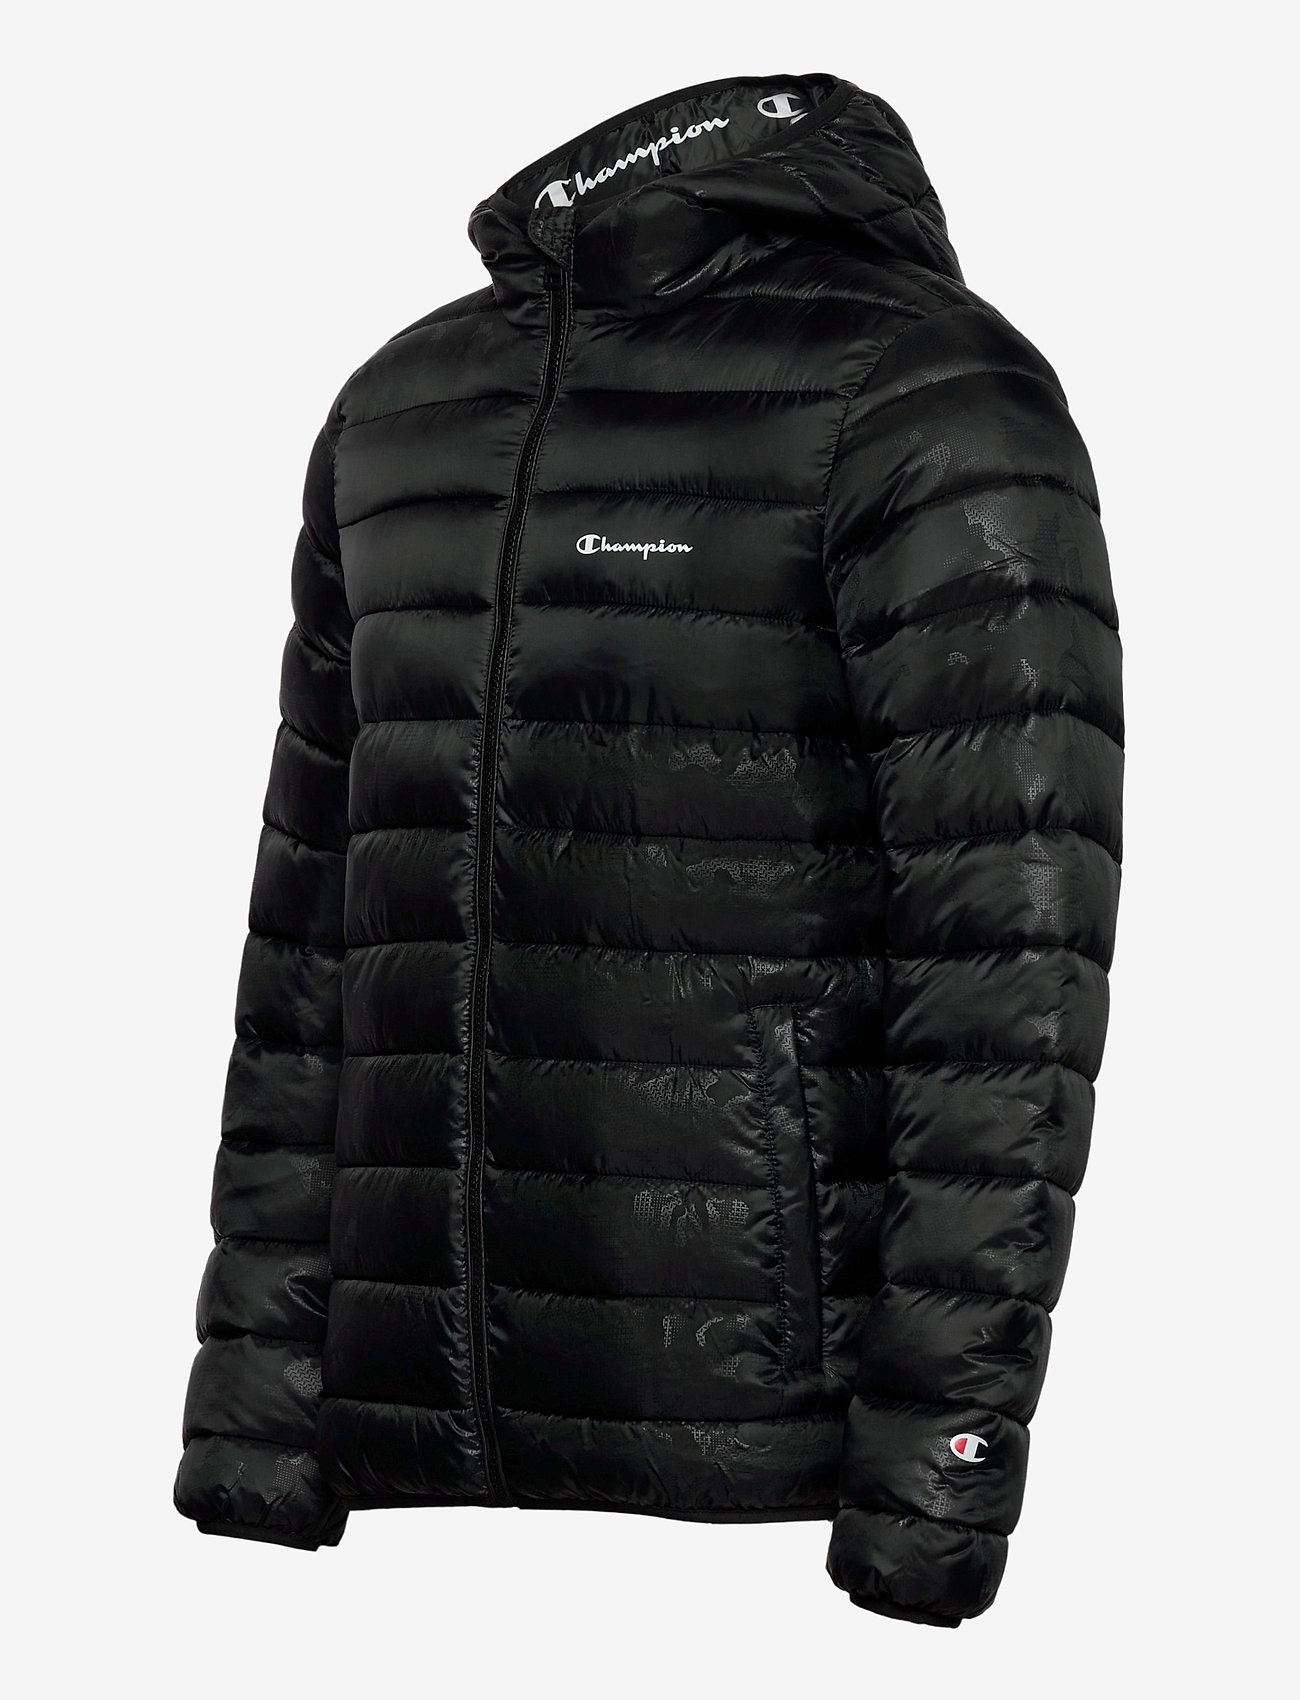 Champion Hooded Jacket - Jakker og frakker BLACK BEAUTY  AL (NBK) - Menn Klær